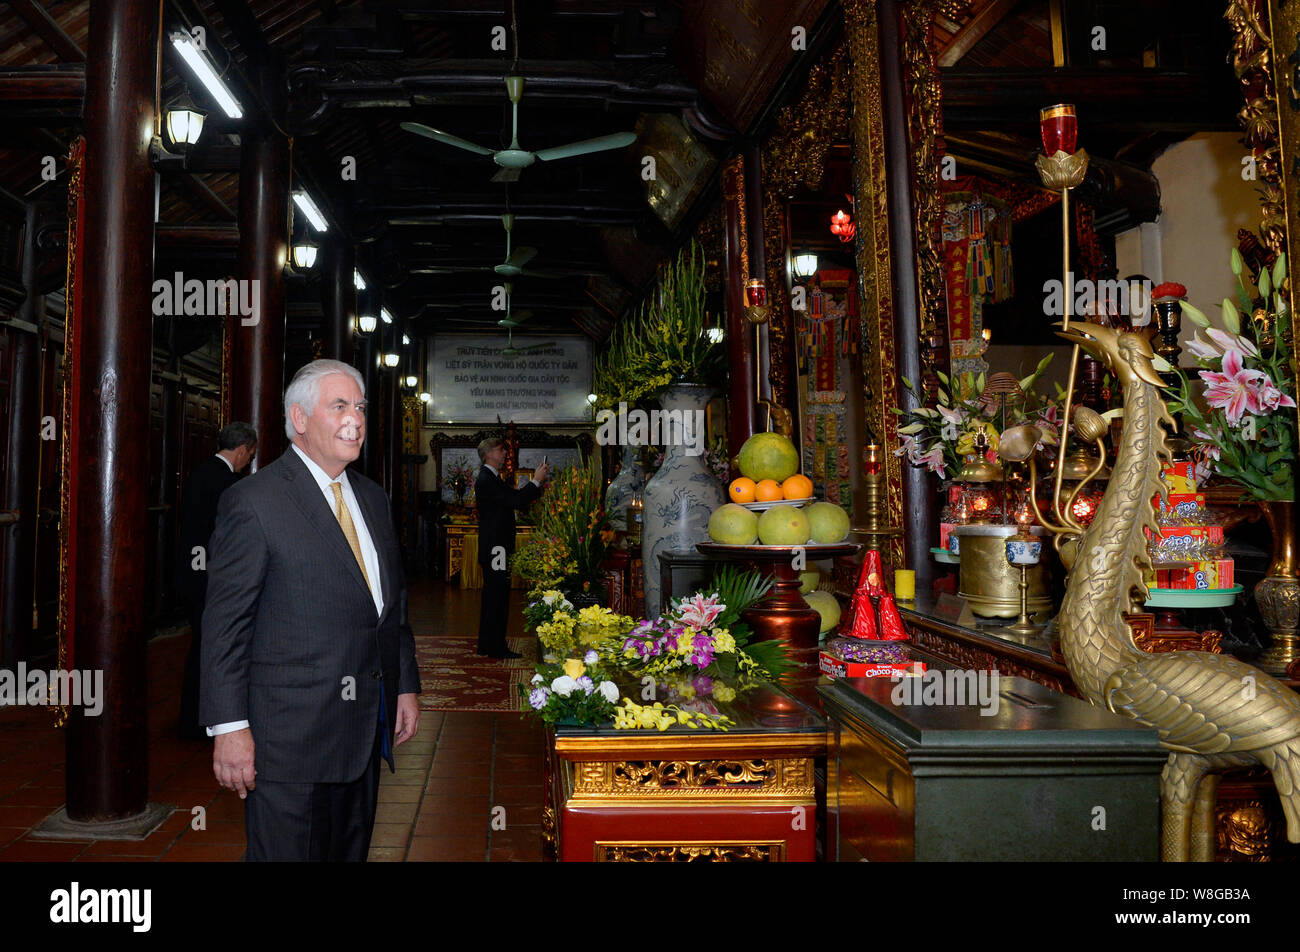 U.S. Secretary of State Rex Tillerson visits Tran Quoc pagoda, the oldest Buddhist temple in Hanoi, on November 11, 2017. Stock Photo